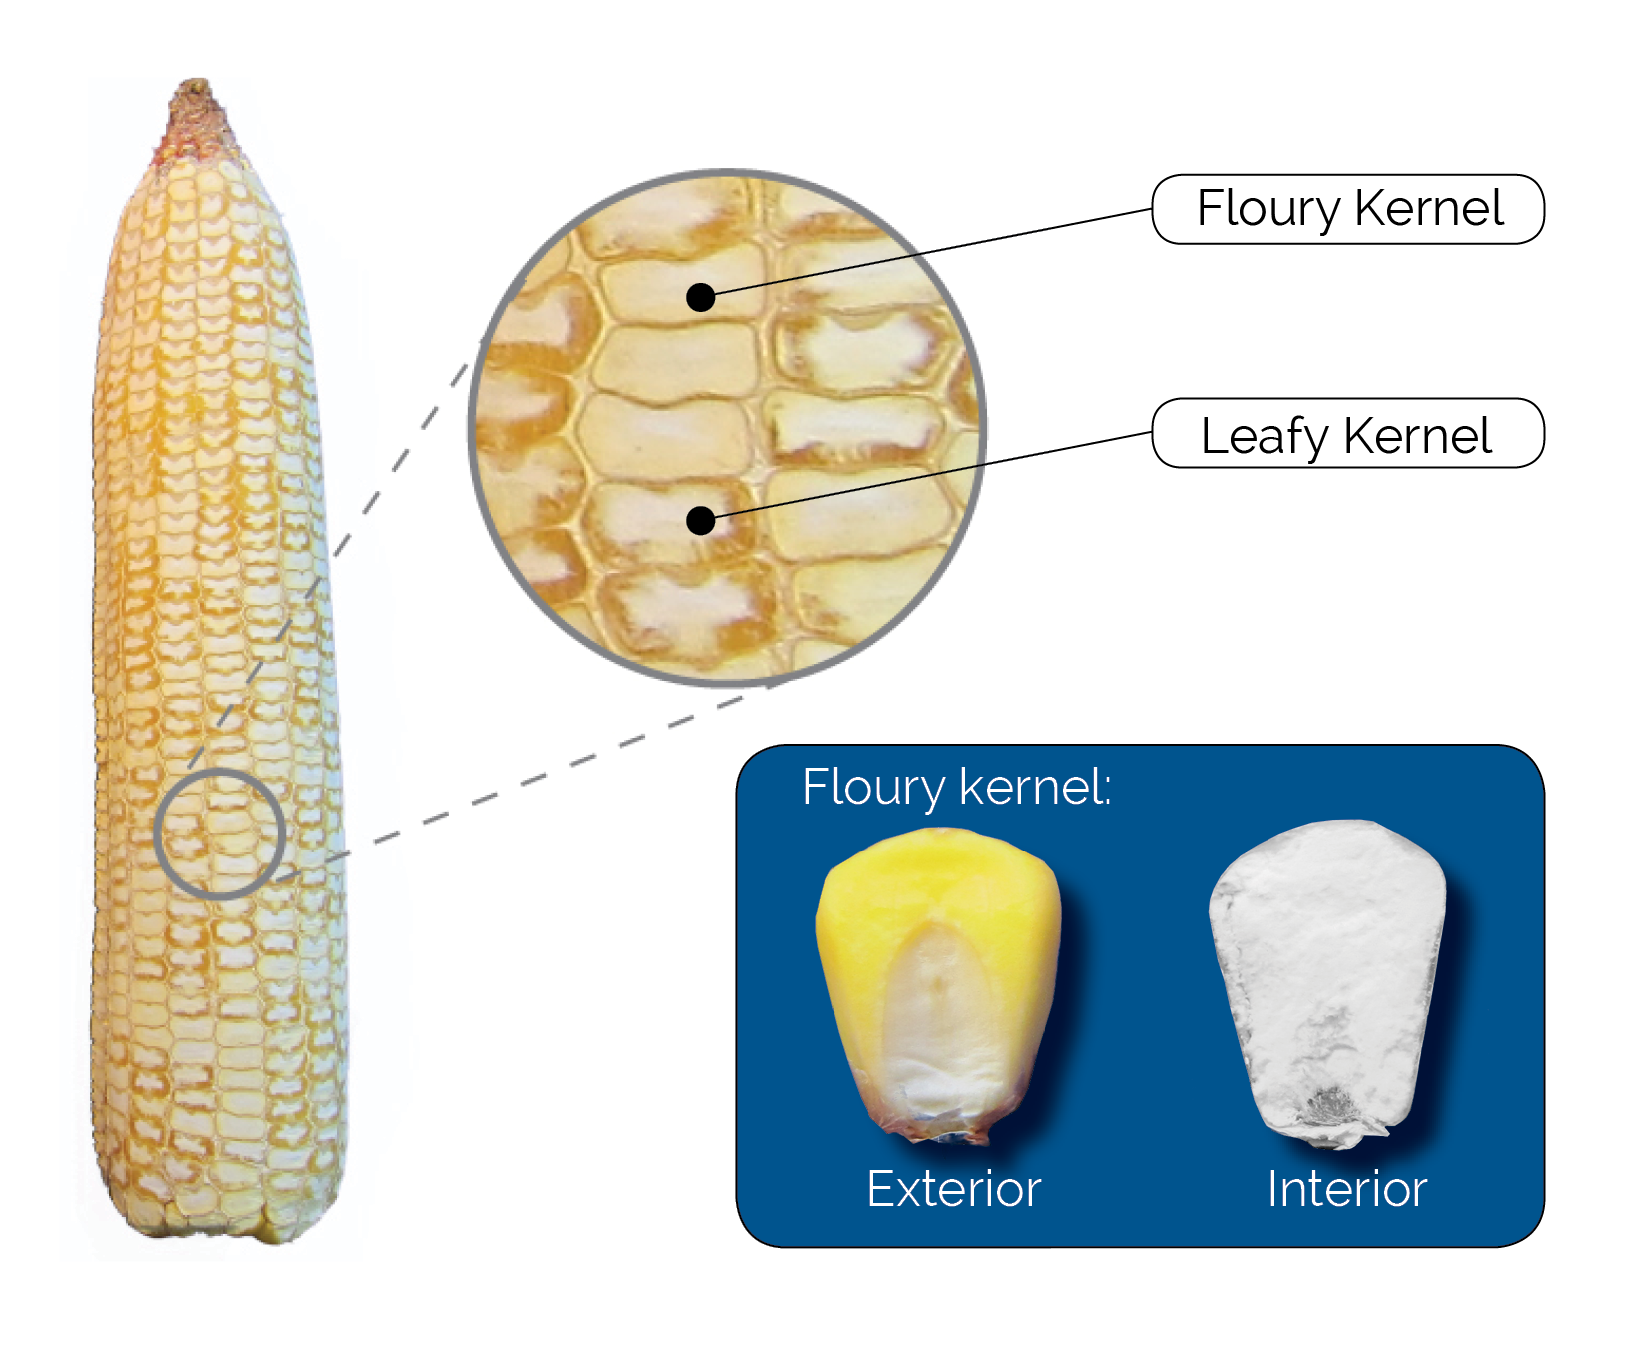 Floury Leafy ear shaved to reveal kernel composition. Approximately 25% of the kernels on each ear are completely floury.